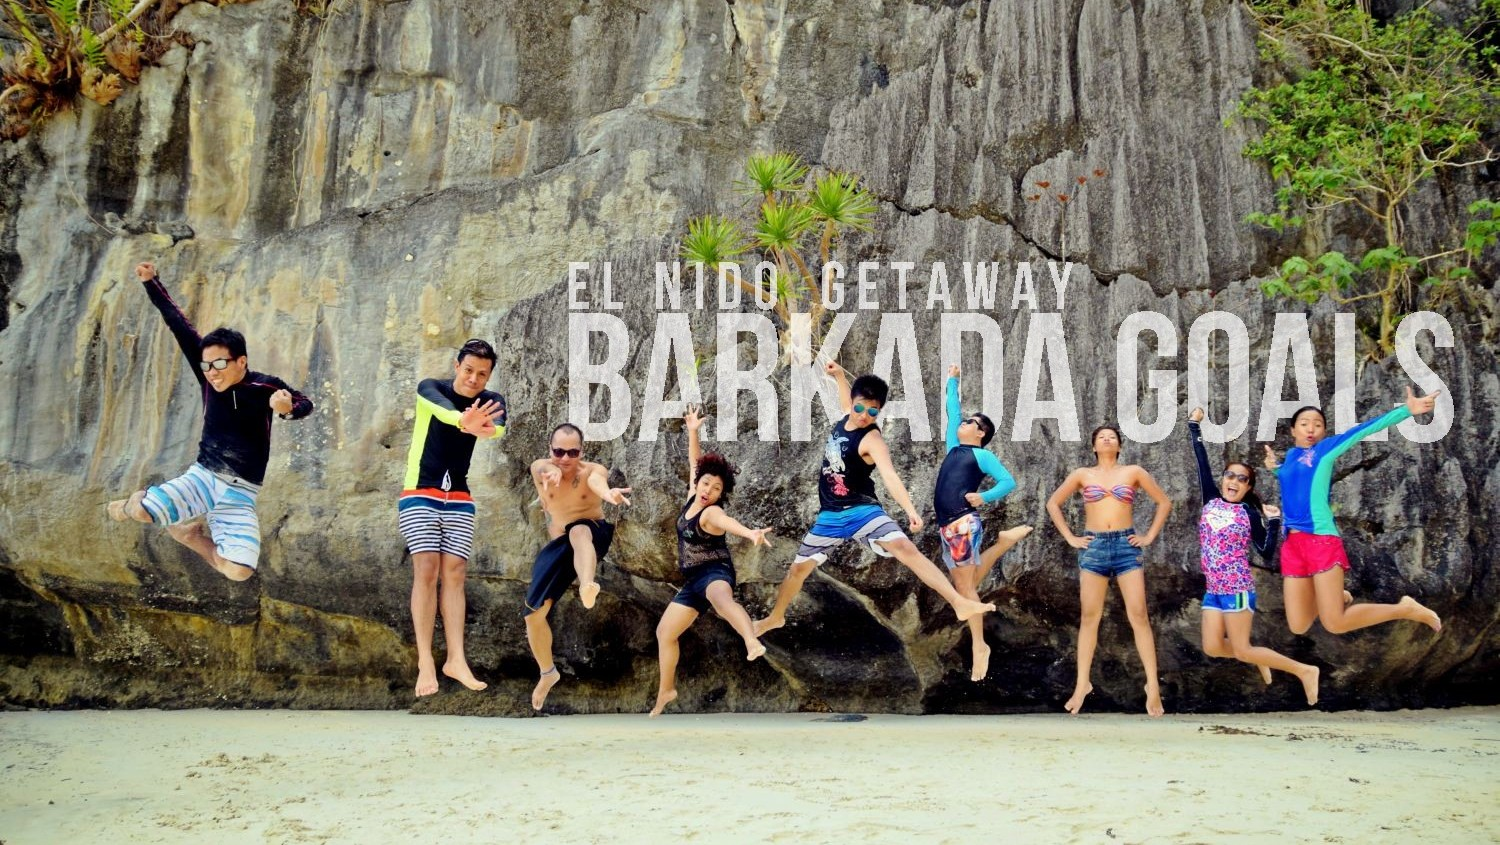 Papaya Beach Jumpshot El Nido Island Hopping Barkada Goals